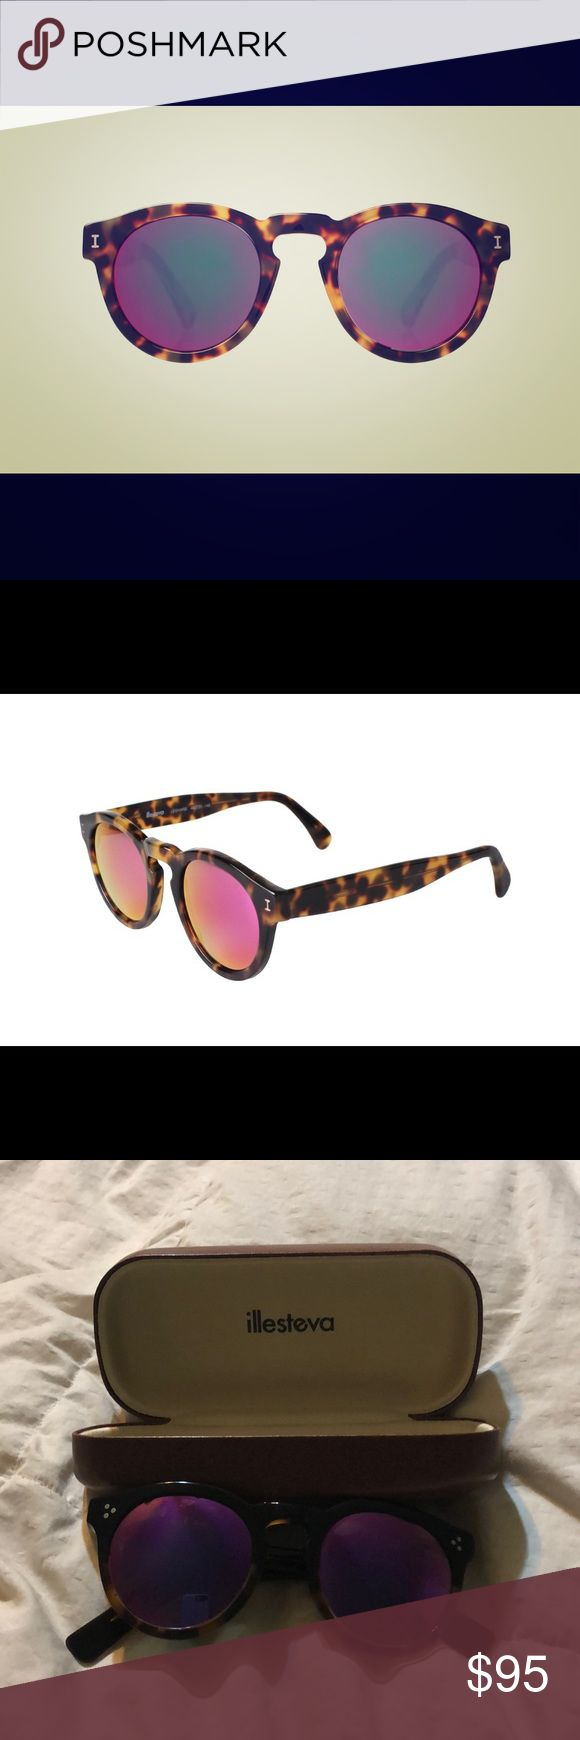 Leonard Sunglasses Tortoise/ Pink Mirrored Lenses In perfect condition comes with case.. . Handmade in Italy. Synonymous with Illesteva, the signature Leonard sunglass frame.  Its three-barrel hinge provides great comfort and is able to withstand even the craziest everyday use. Illesteva Accessories Sunglasses